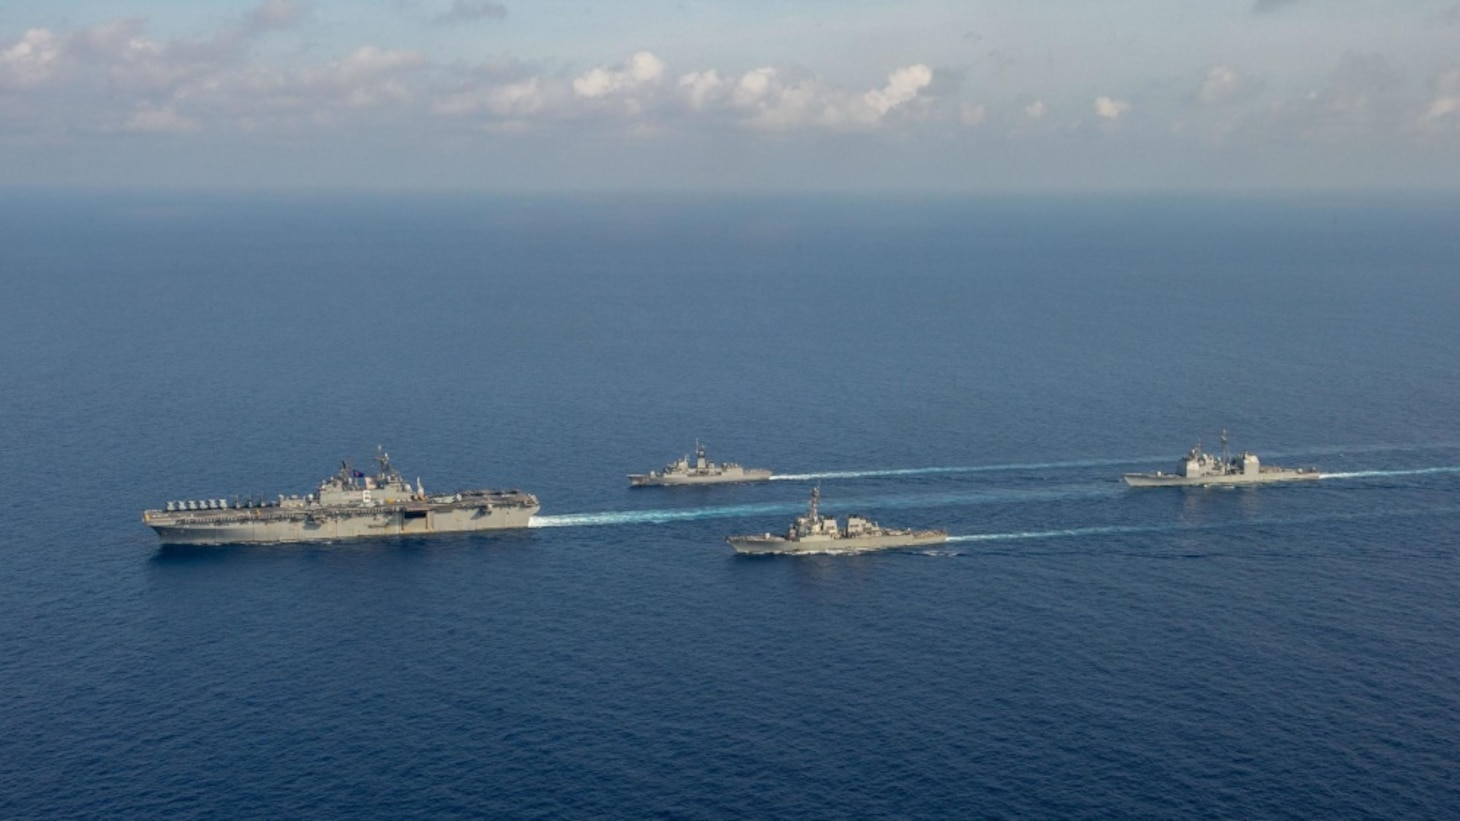 U.S. Navy Amphibious assault ship USS America (LHA 6), left, sails with Royal Australian Navy guided-missile frigate HMAS Parramatta (FFH 154), Arleigh-Burke class guided missile destroyer USS Barry (DDG 52) and Ticonderoga-class guided-missile cruiser USS Bunker Hill (CG 52). Bunker Hill is deployed to the U.S. 7th Fleet area of operations and is operating with the America Expeditionary Strike Group in support of security and stability in the Indo-Pacific region.